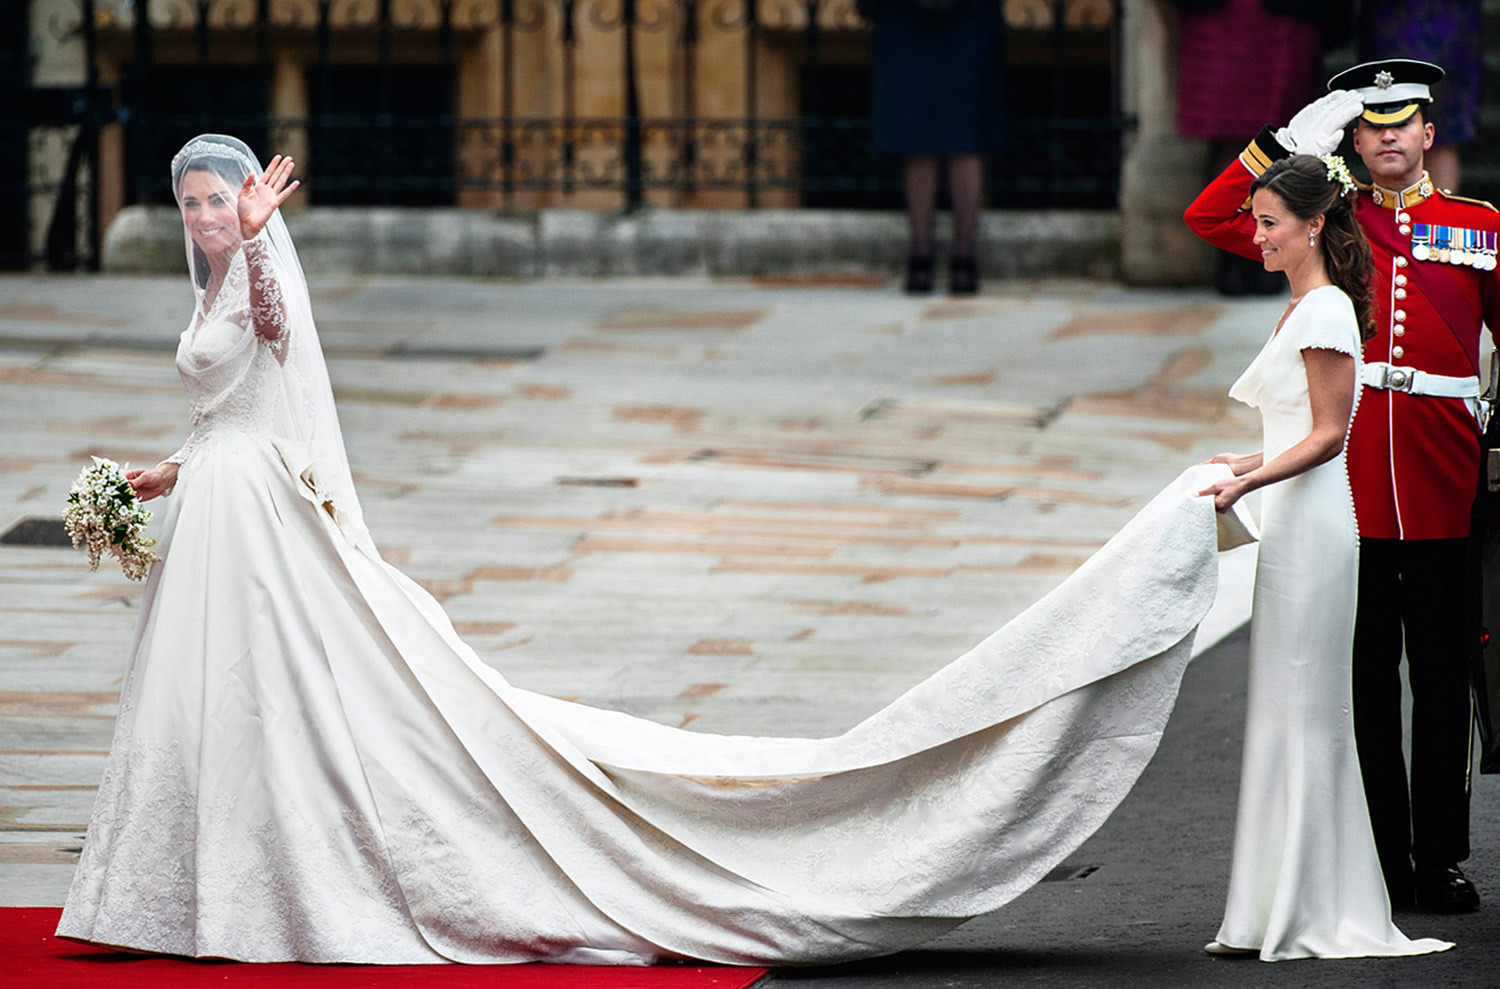 KATE AND PIPPA MIDDLETON, ROYAL WEDDING, LONDON